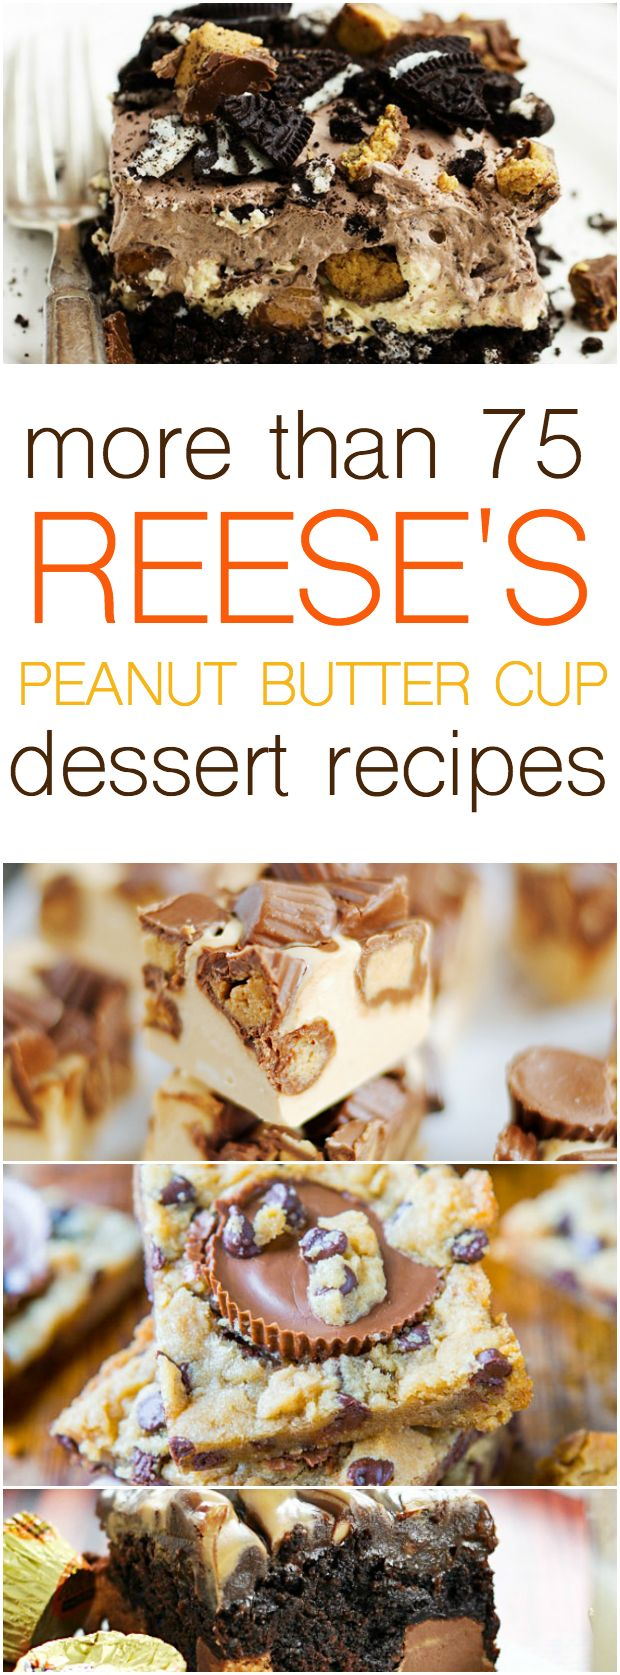 More than 75 Reese's Cup dessert recipes including cheesecake, no-churn ice cream, and cookie bars!